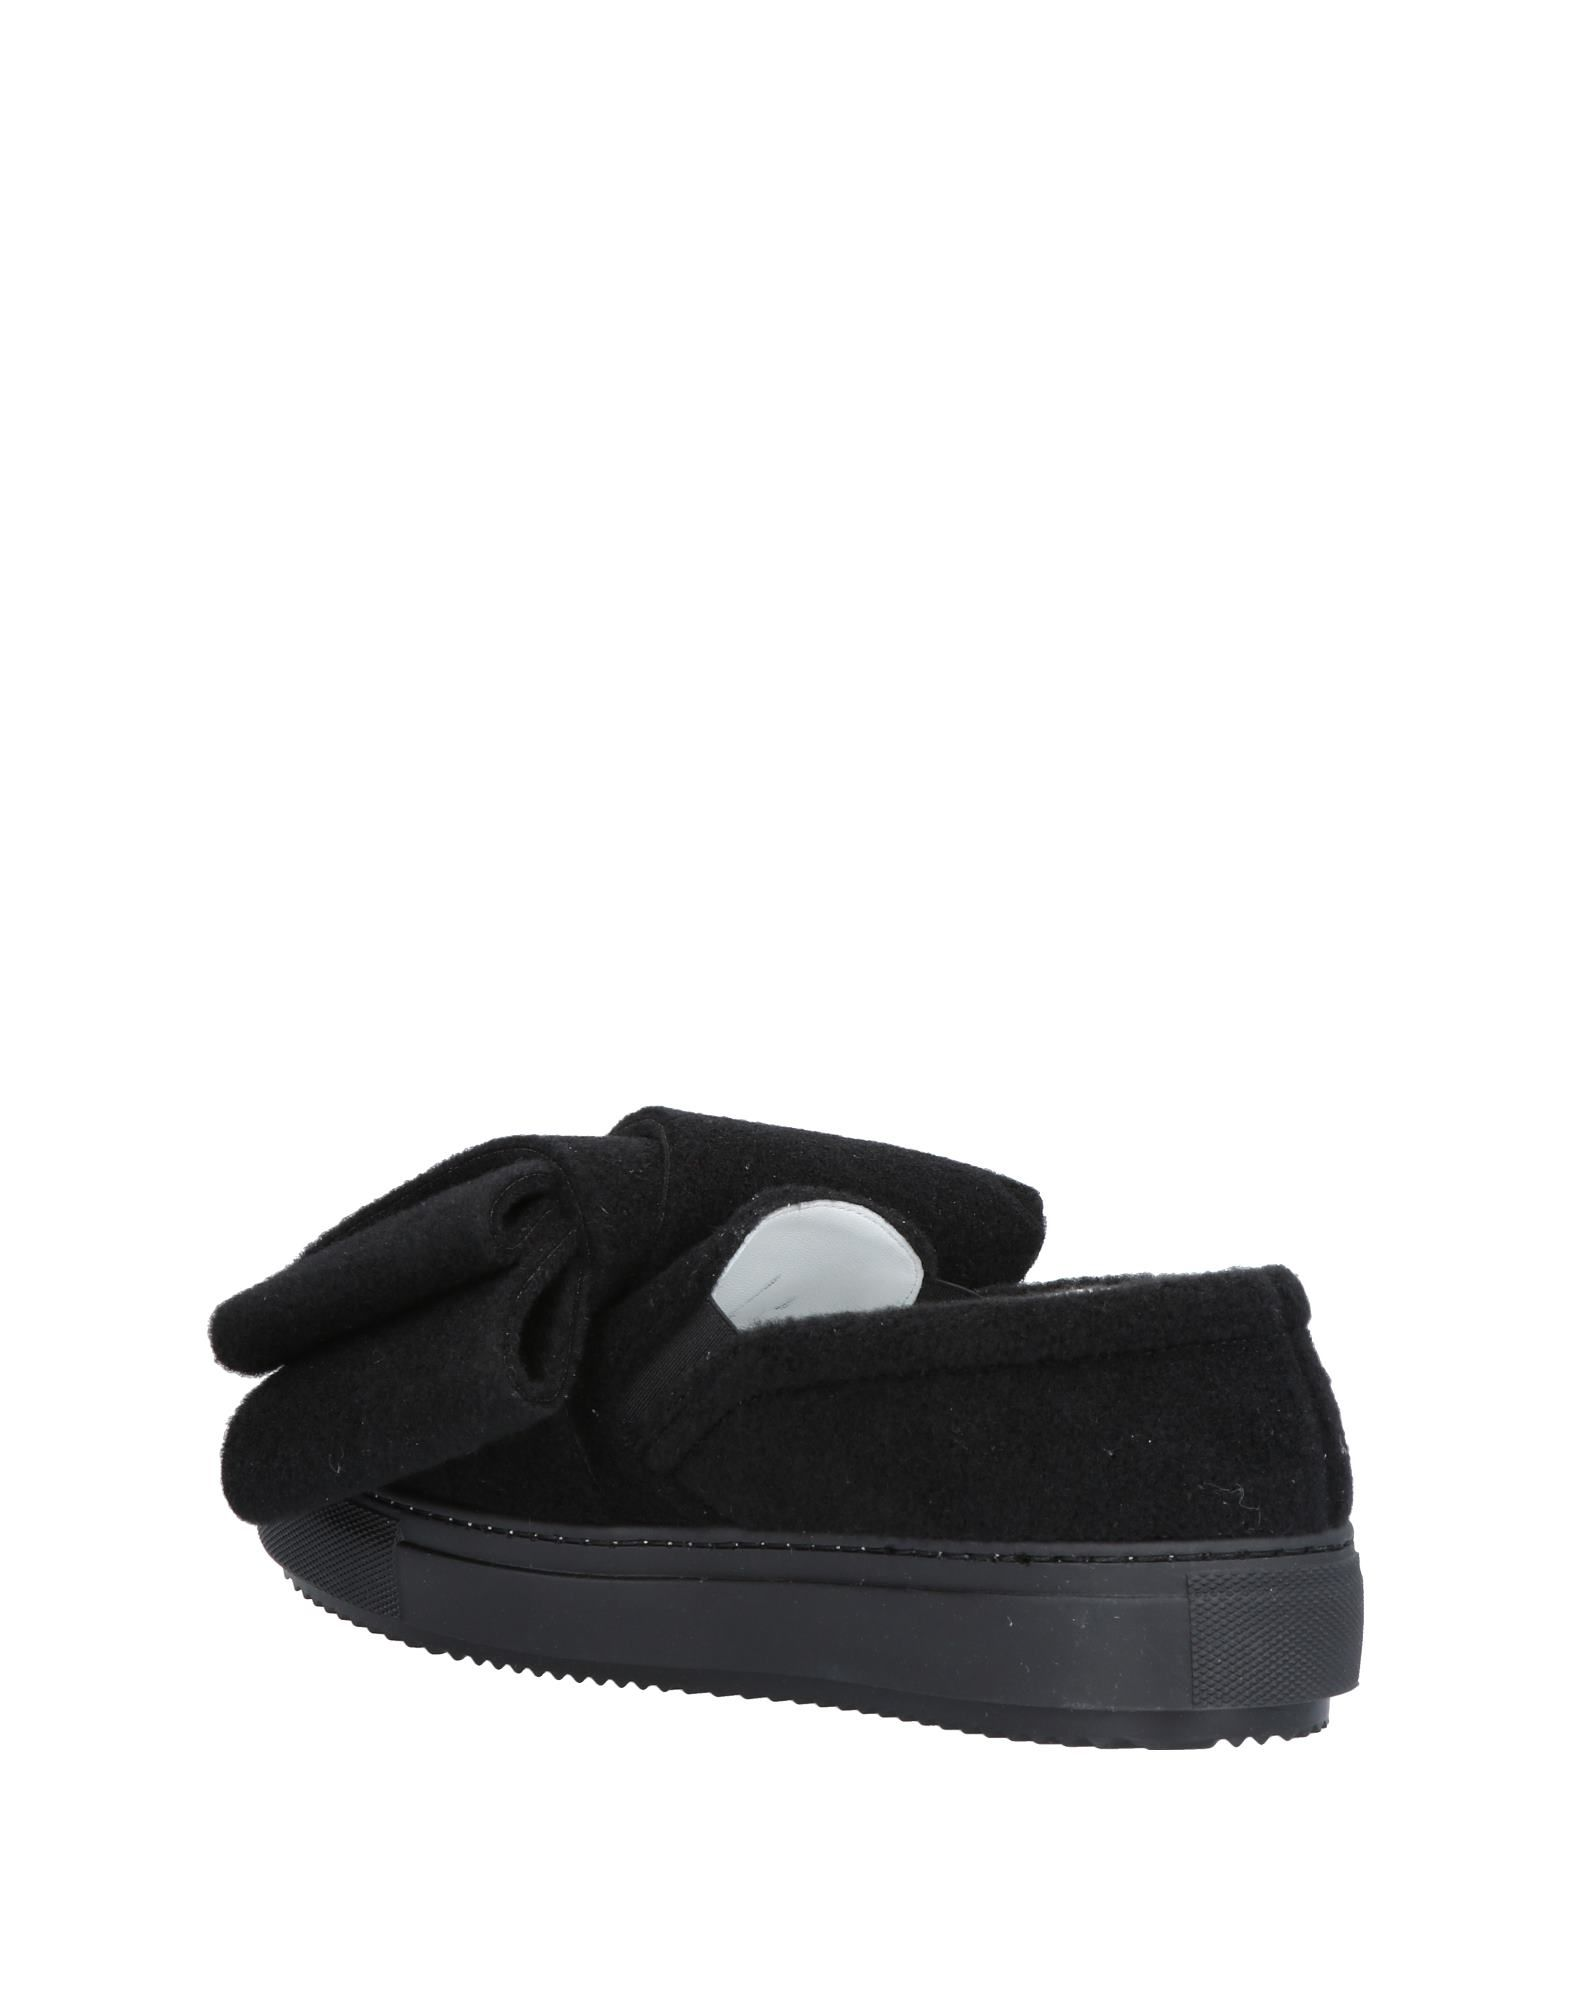 Sneakers Olivias Bow Femme - Sneakers Olivias Bow sur